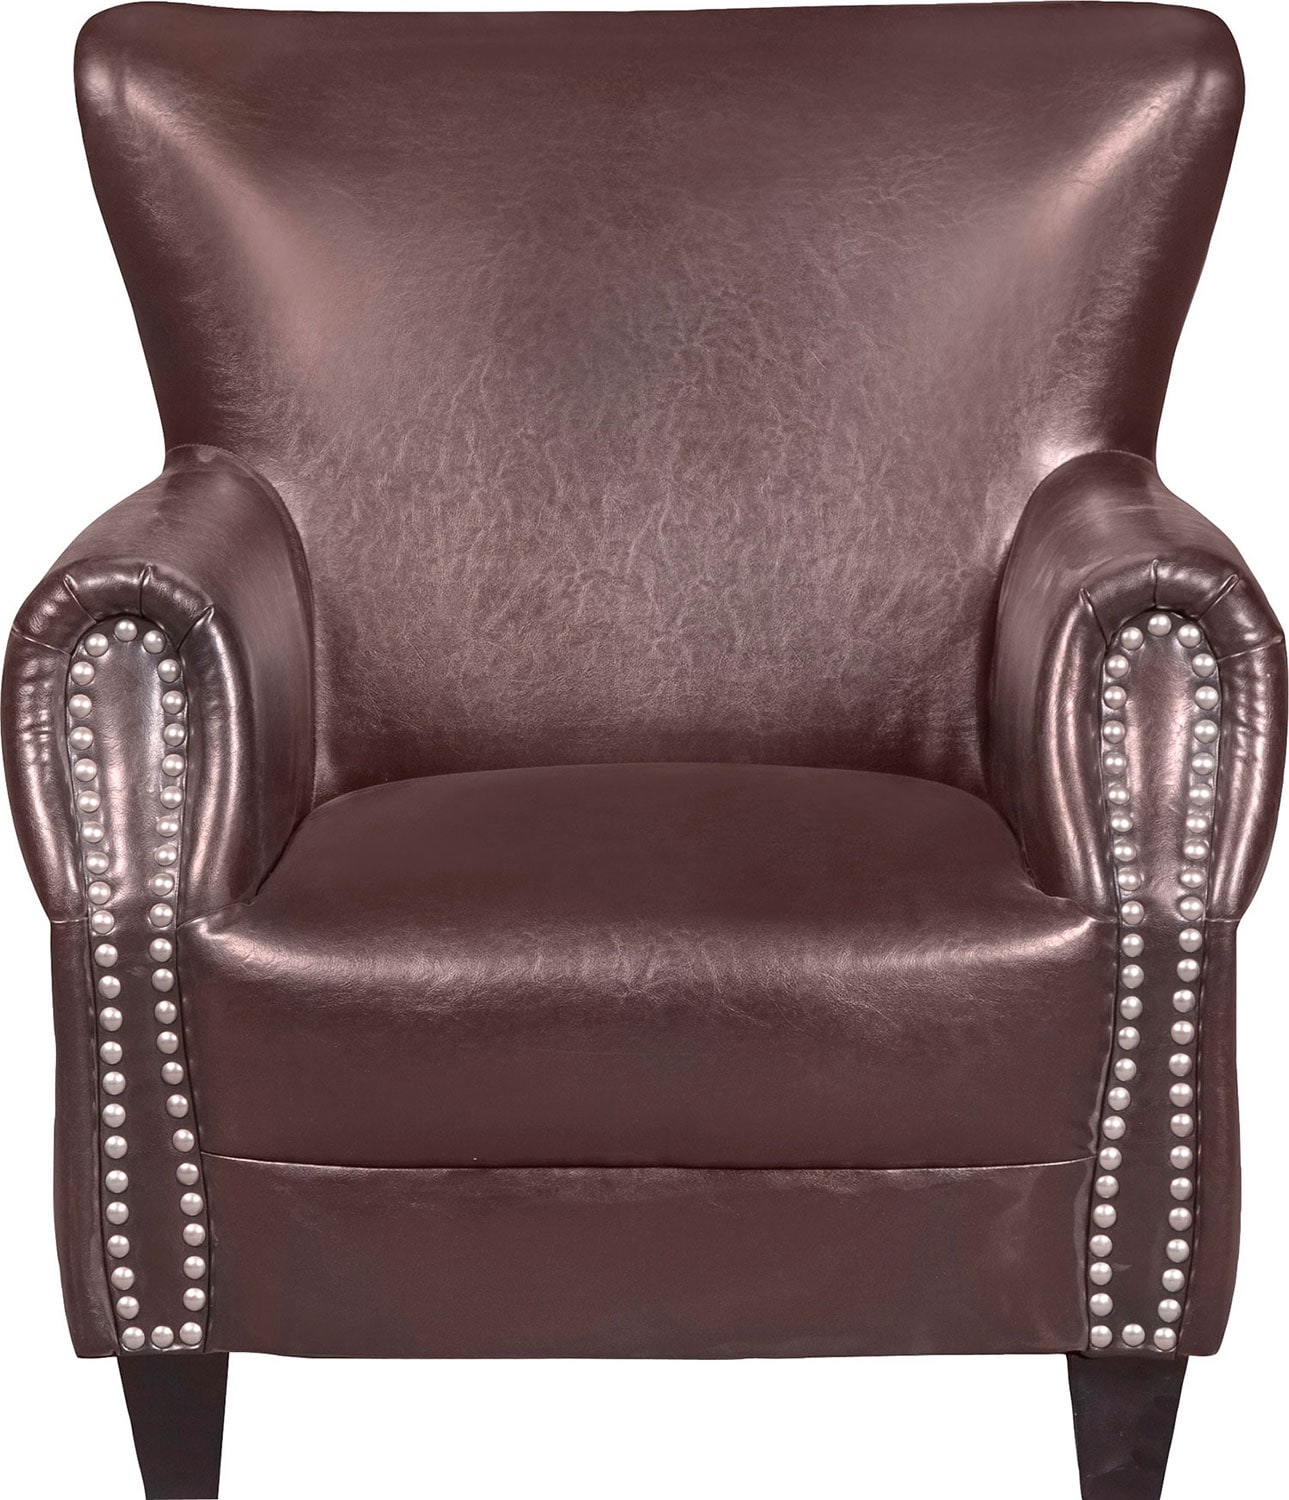 Flint Bonded Leather Accent Chair - Brown